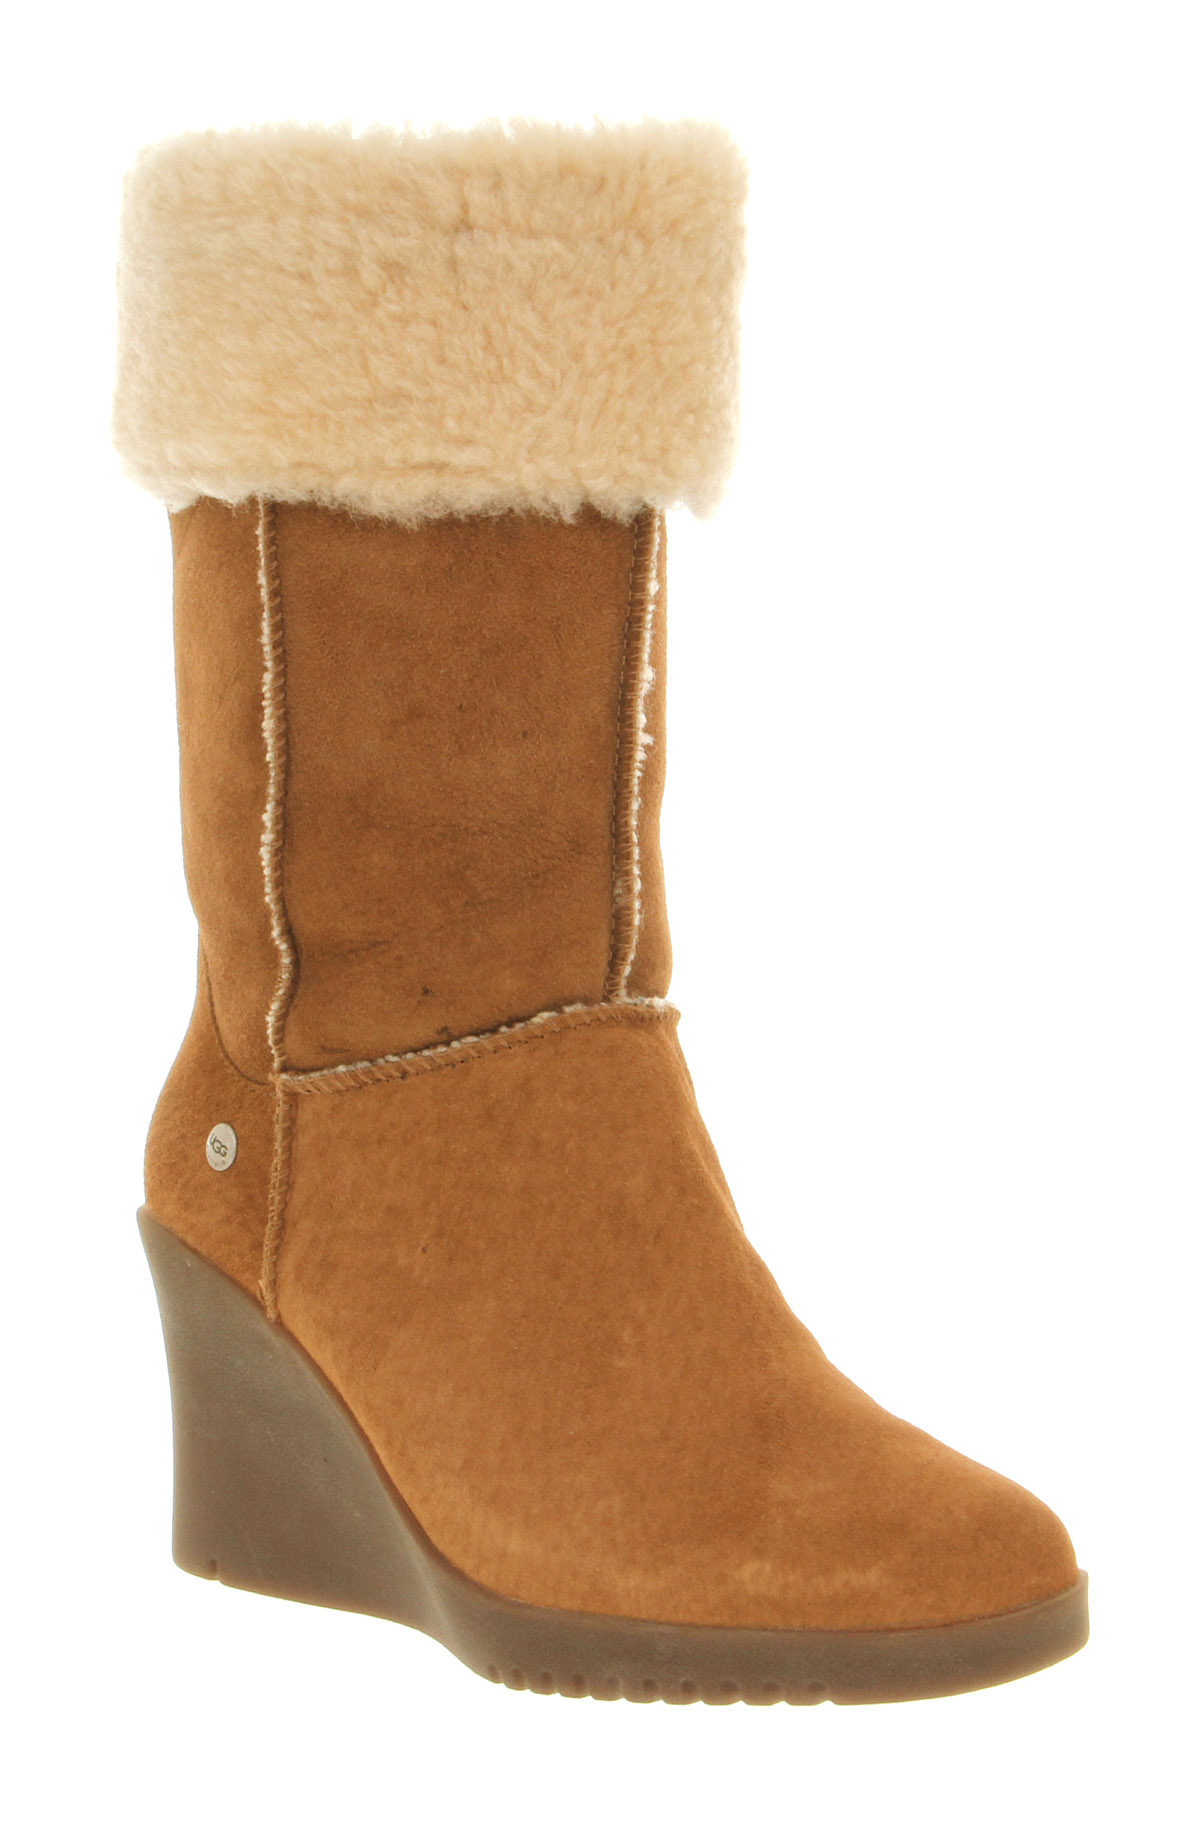 best prices for womens ugg boots